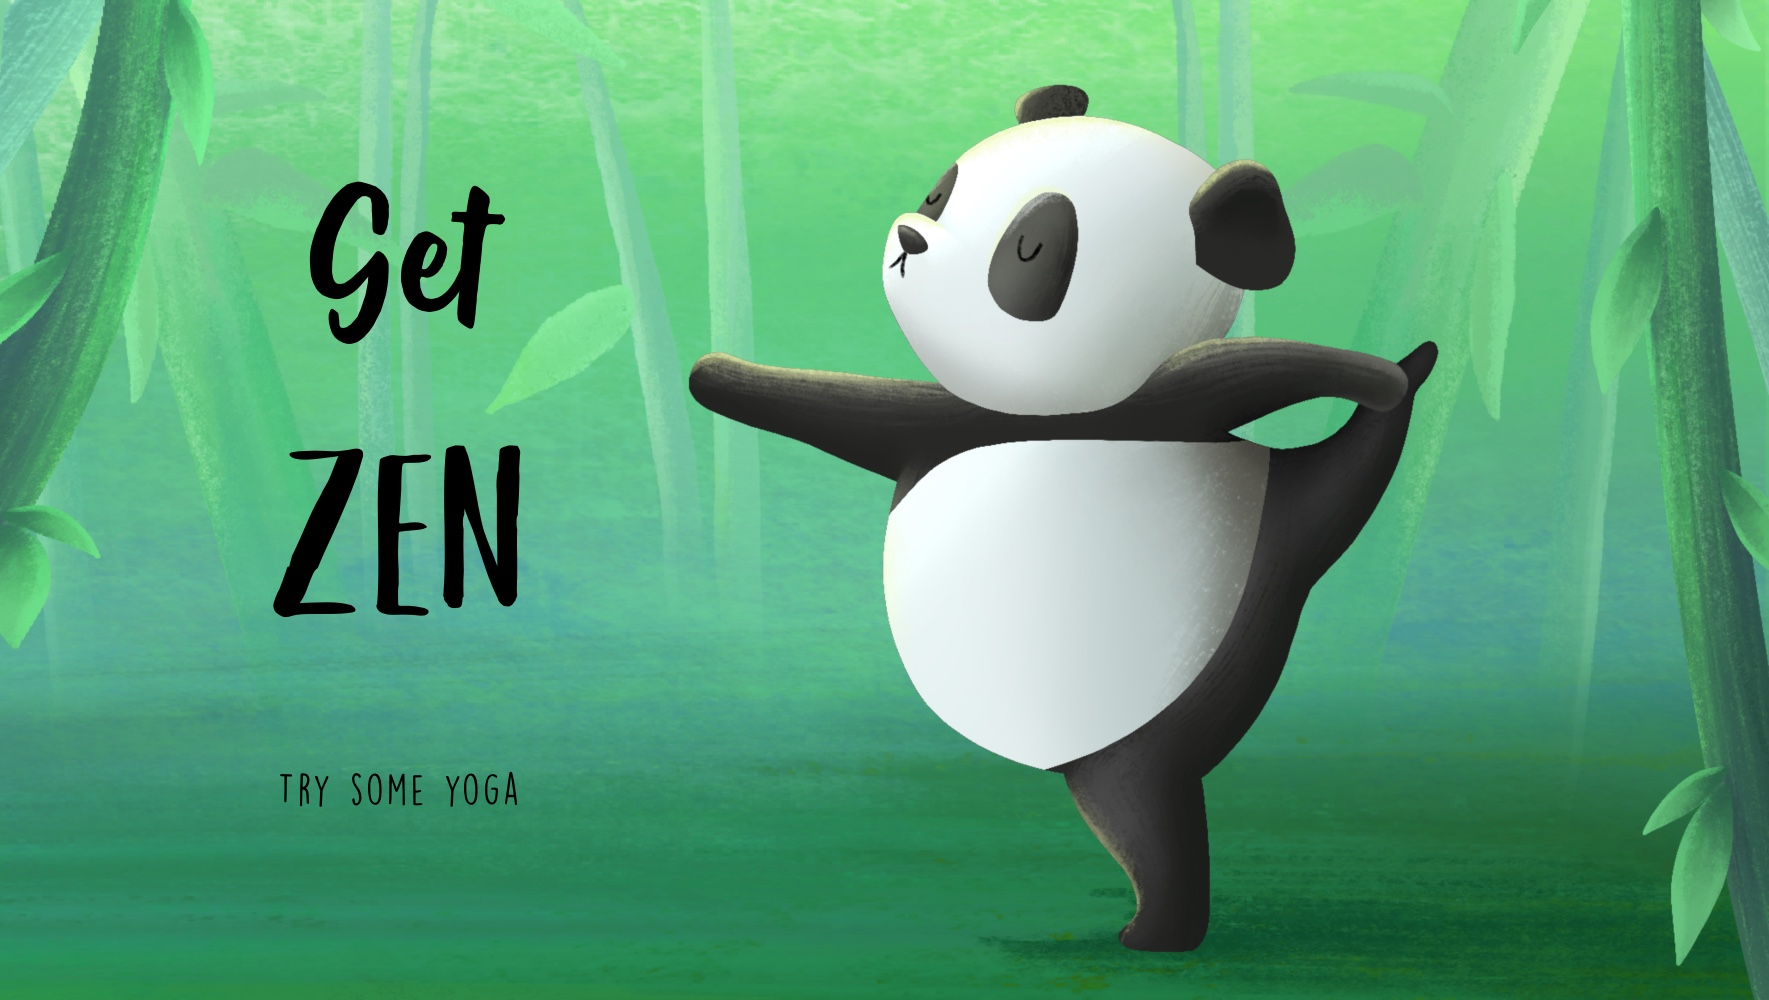 Digital illustration of a panda doing yoga by BA Illustration student Sophie Kent